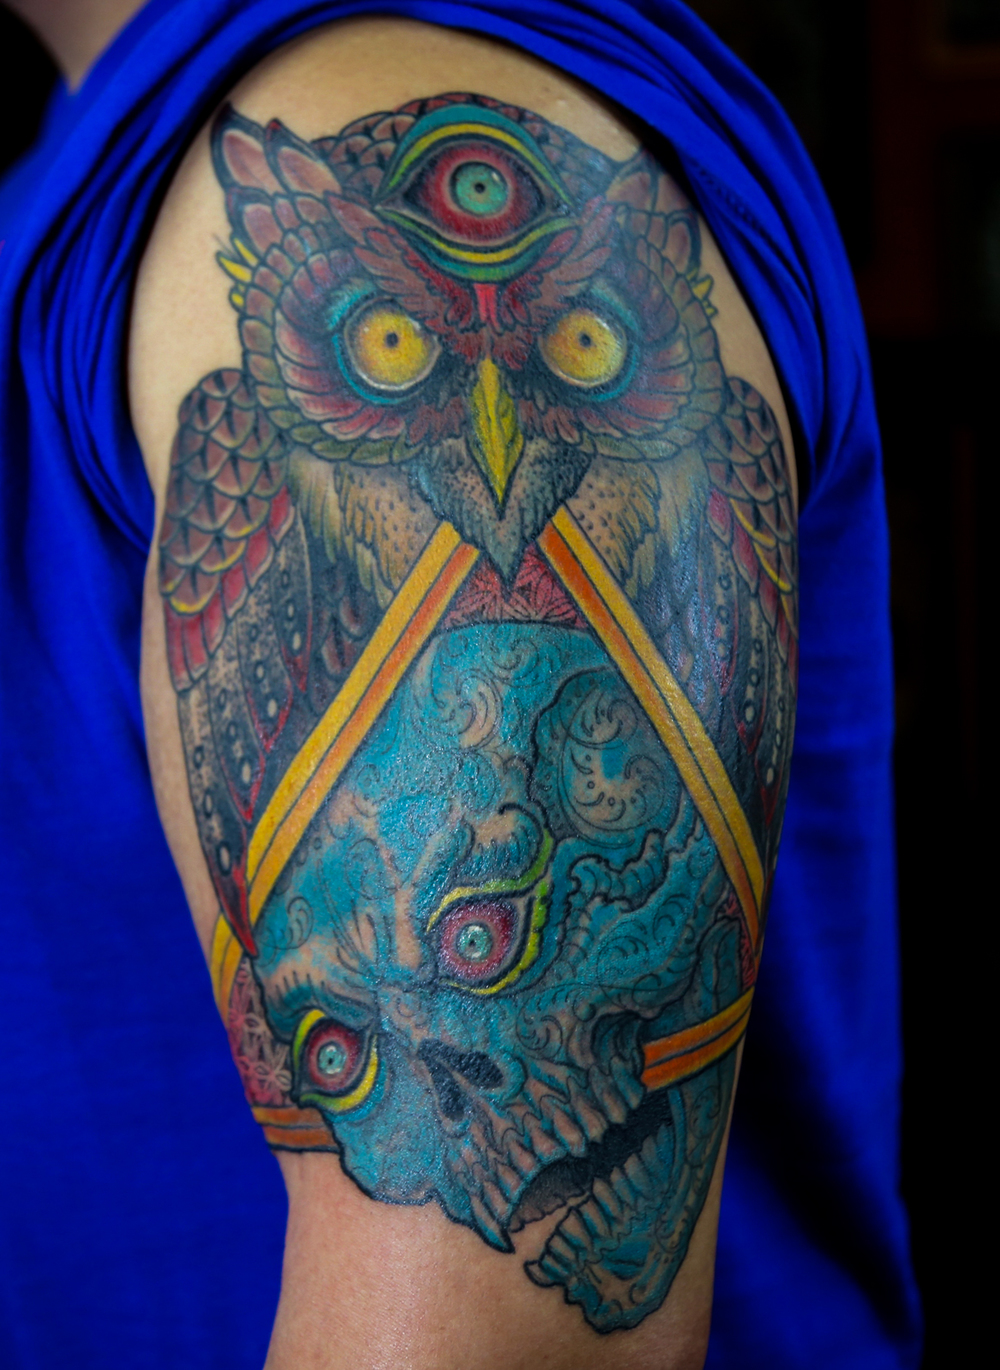 Owl and Skull enrique bernal ejay tattoo.jpg